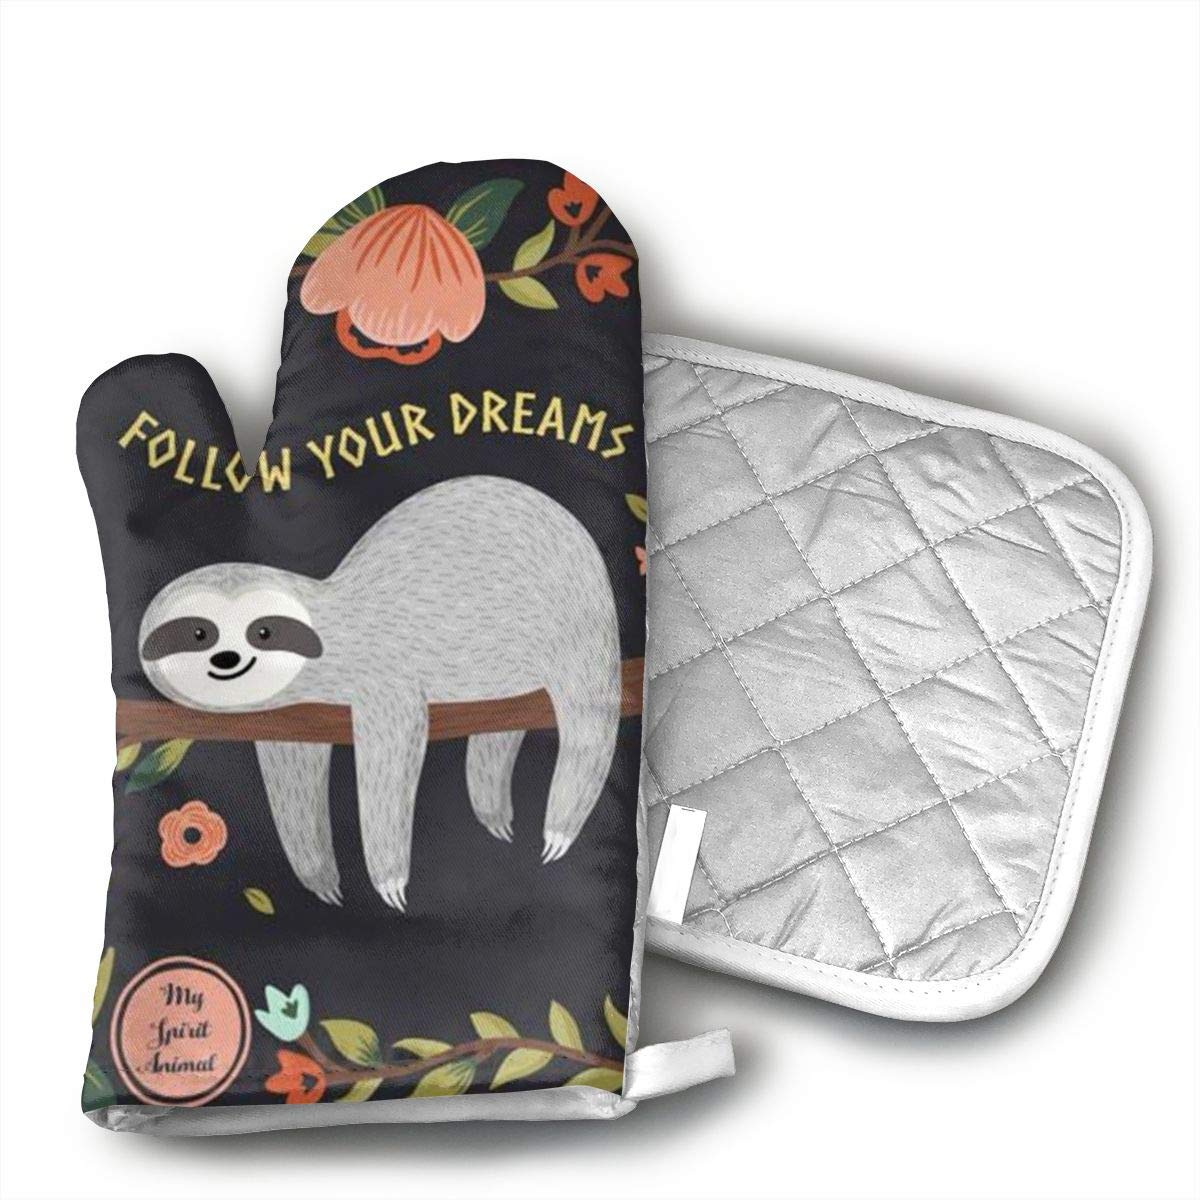 Ksiwo Sloth My Spirit Animal Oven Mitts and Pot Holders Heat Resistant Gloves to Oven Gloves for Safe BBQ Cook Baking Grilling